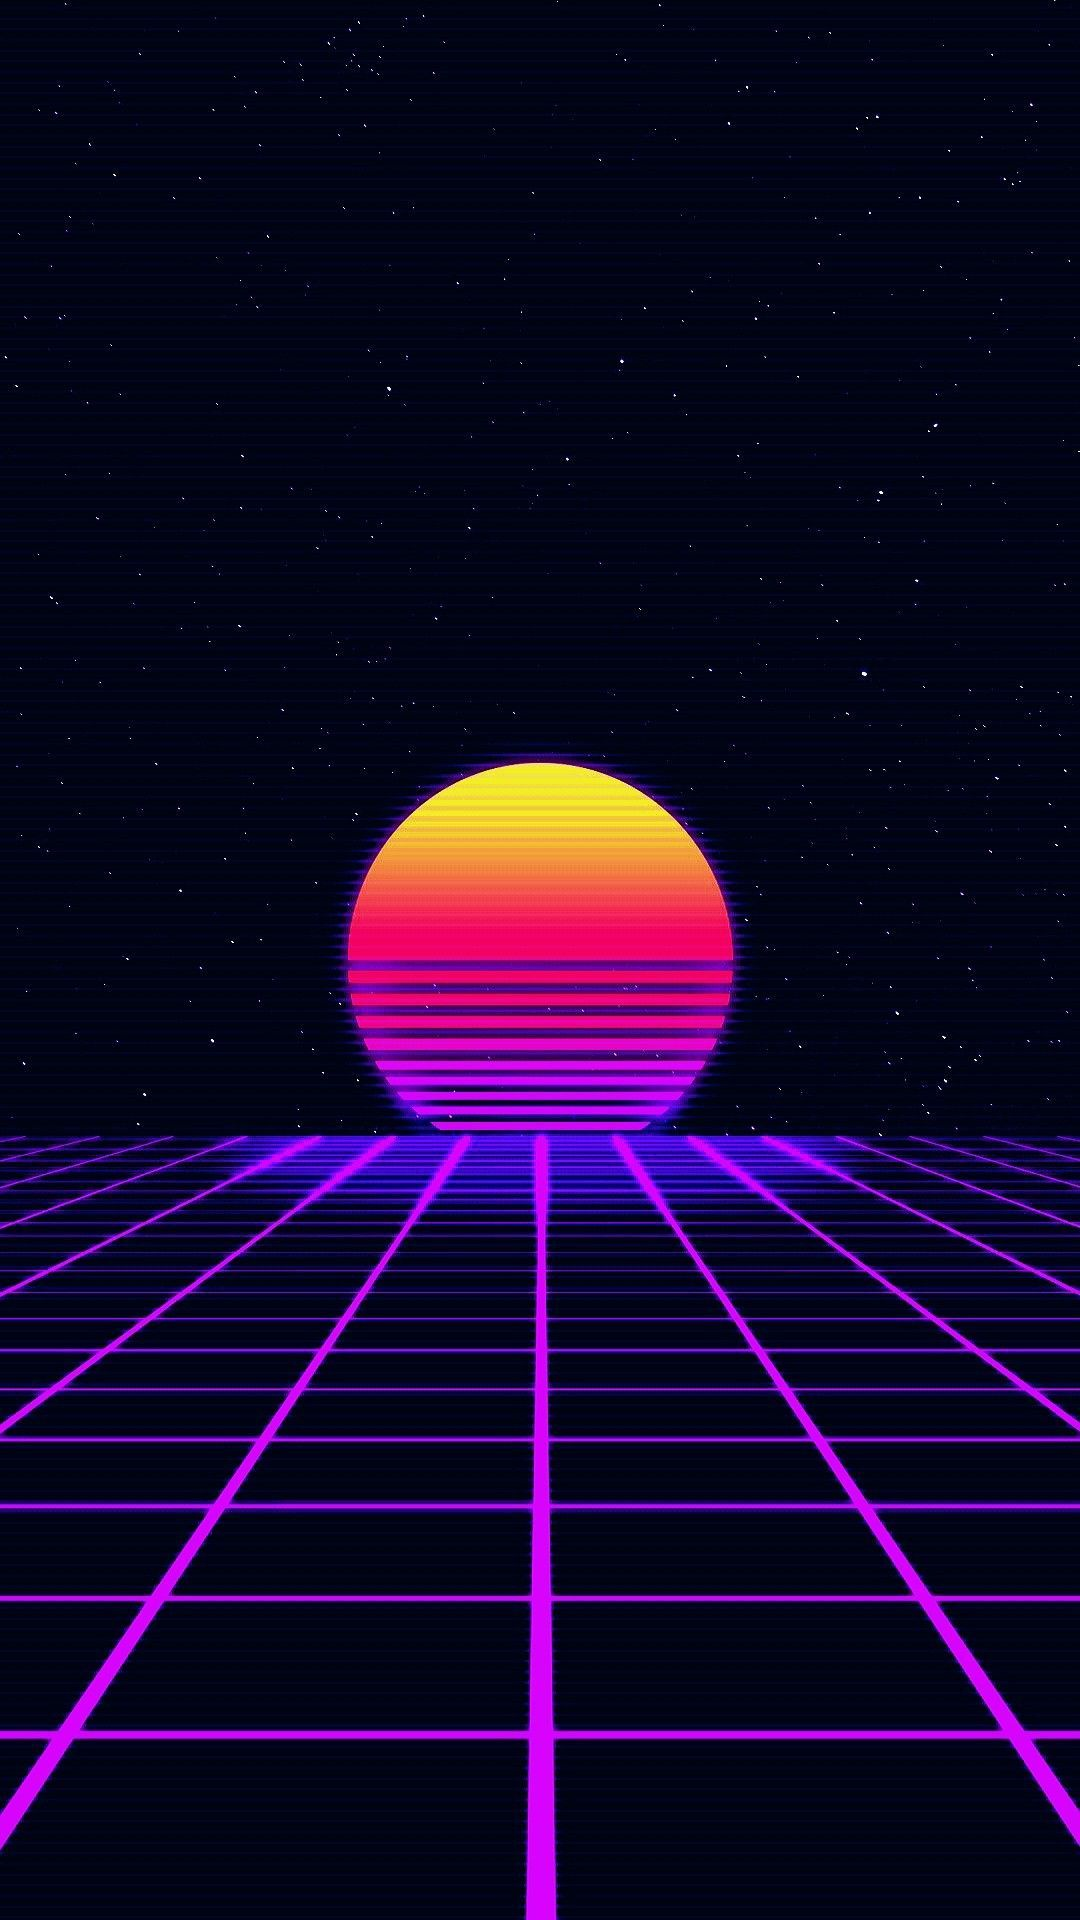 80s Art Neon Vaporwave Wallpaper Neon Wallpaper Synthwave Art